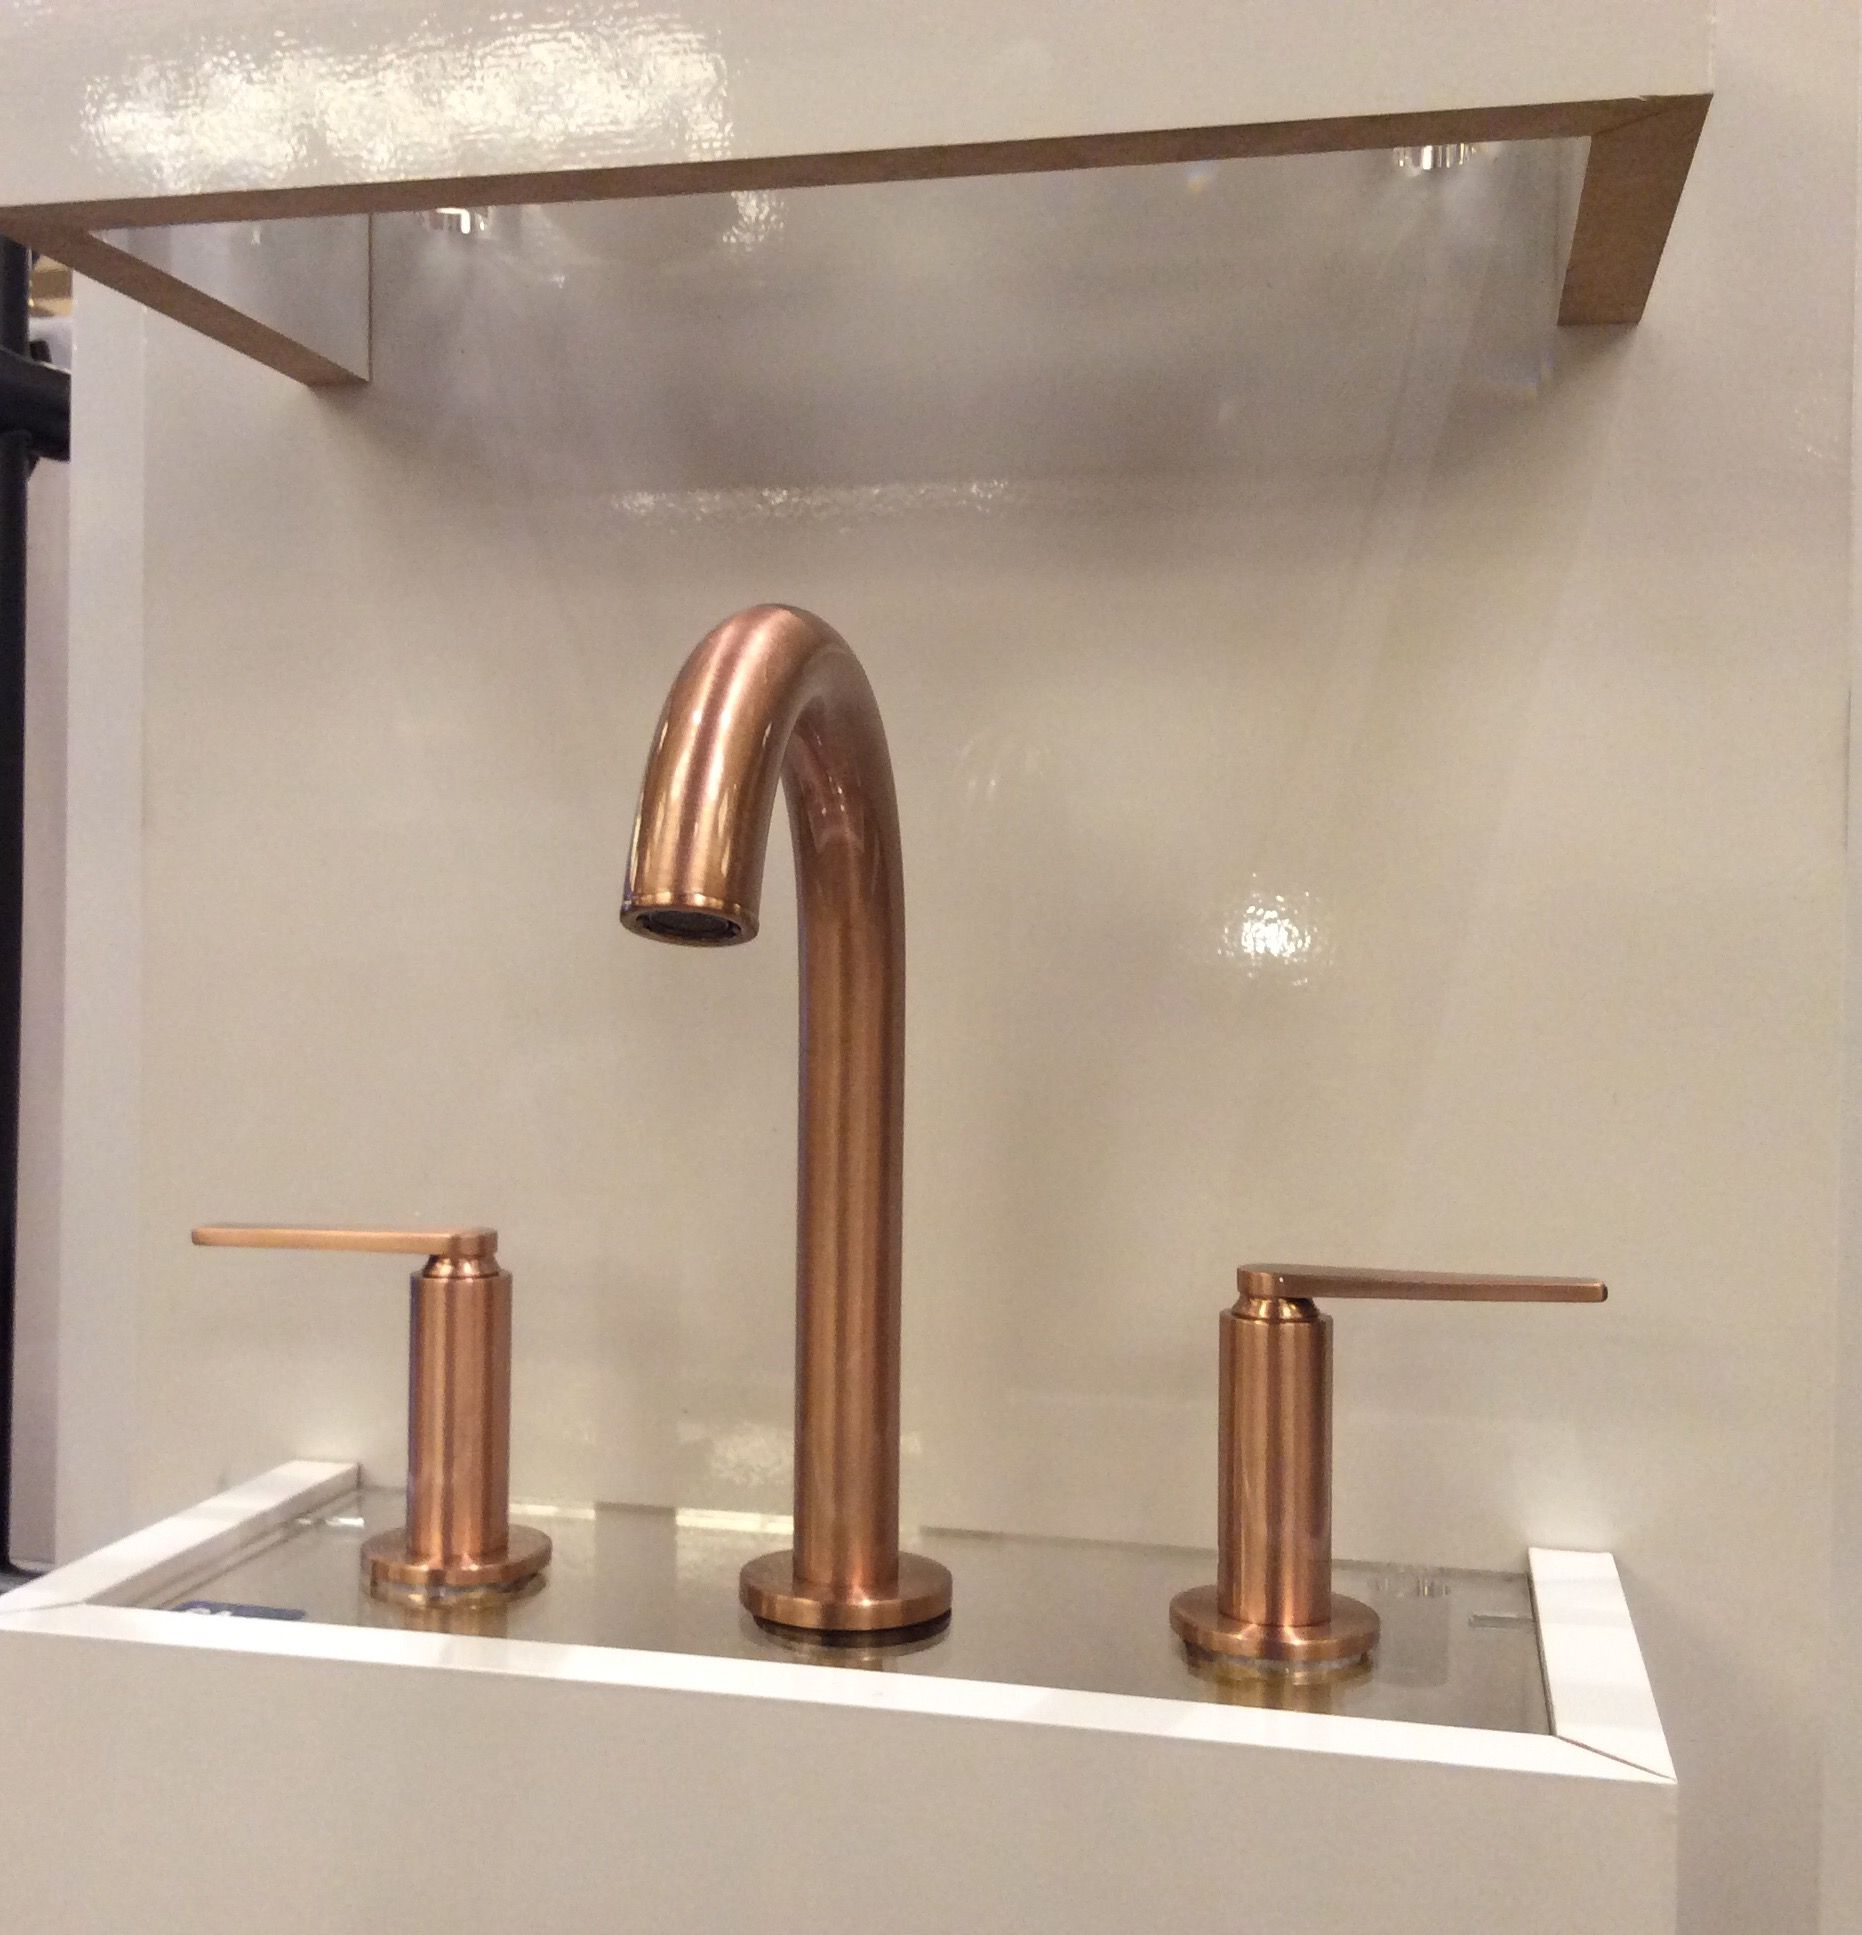 Fresh Unlacquered Brass Bathroom Faucet Bathroom